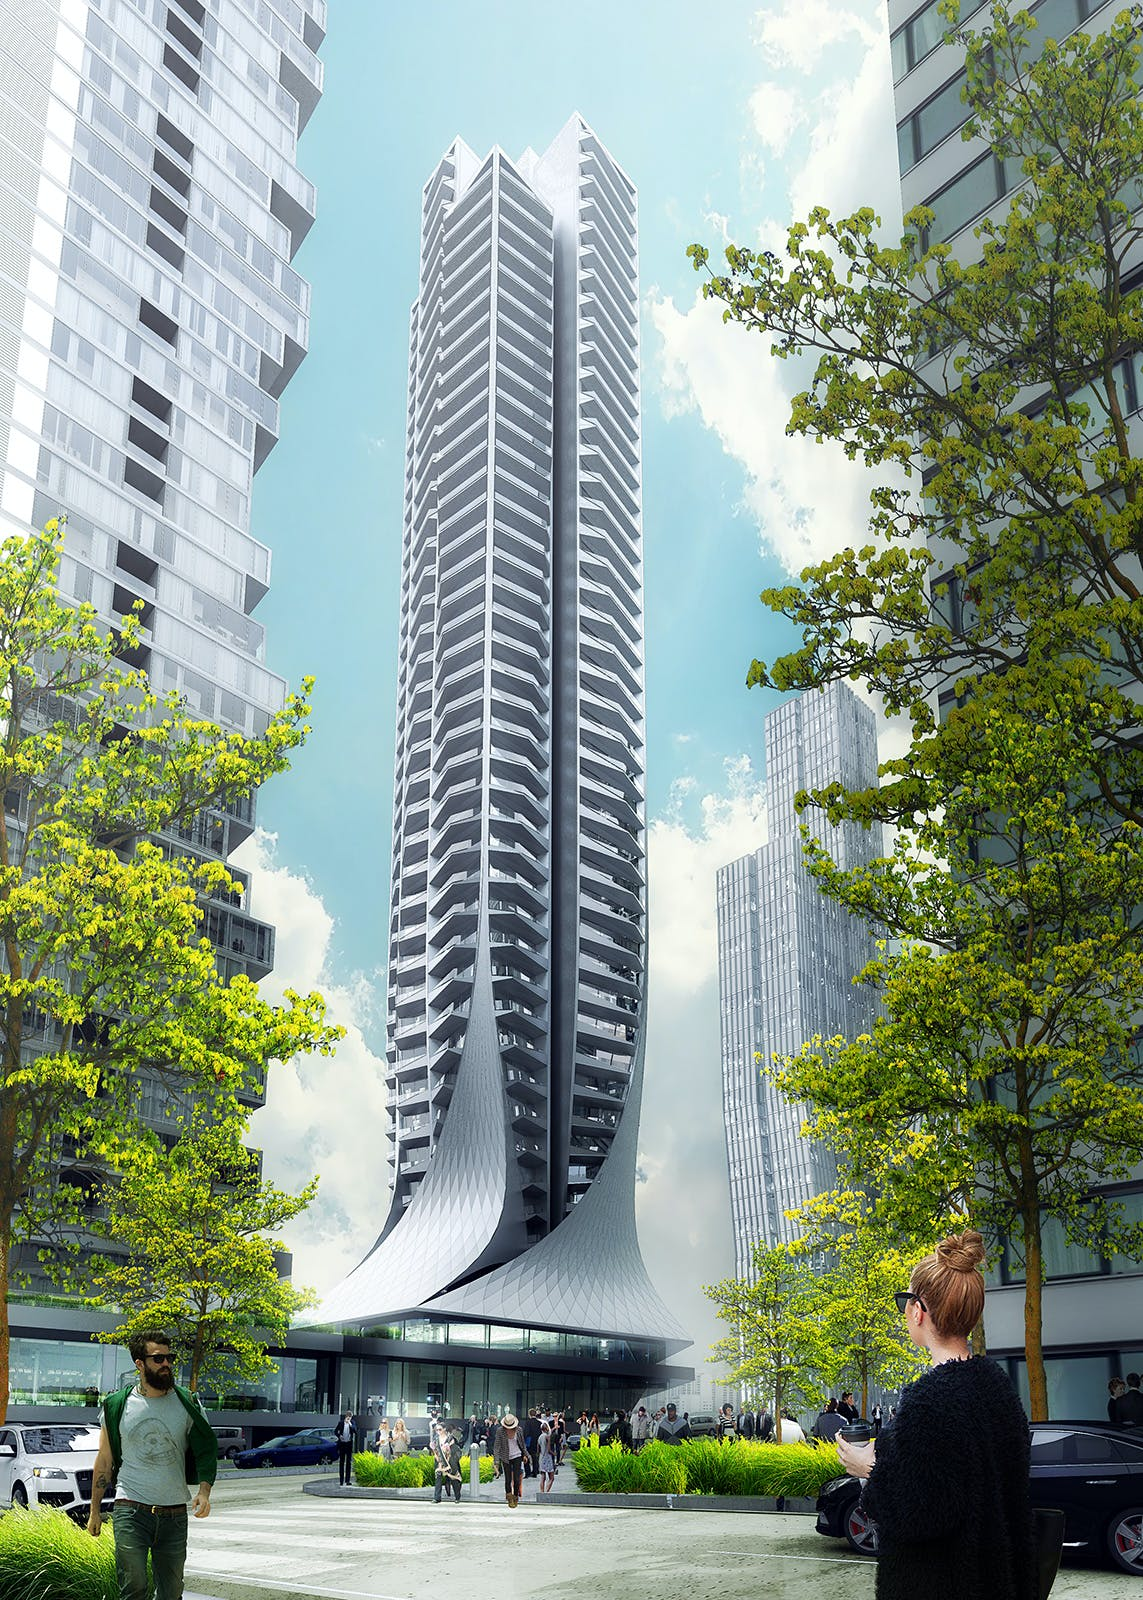 Construction starts for zaha hadid architects 39 bora for Local residential architects near me